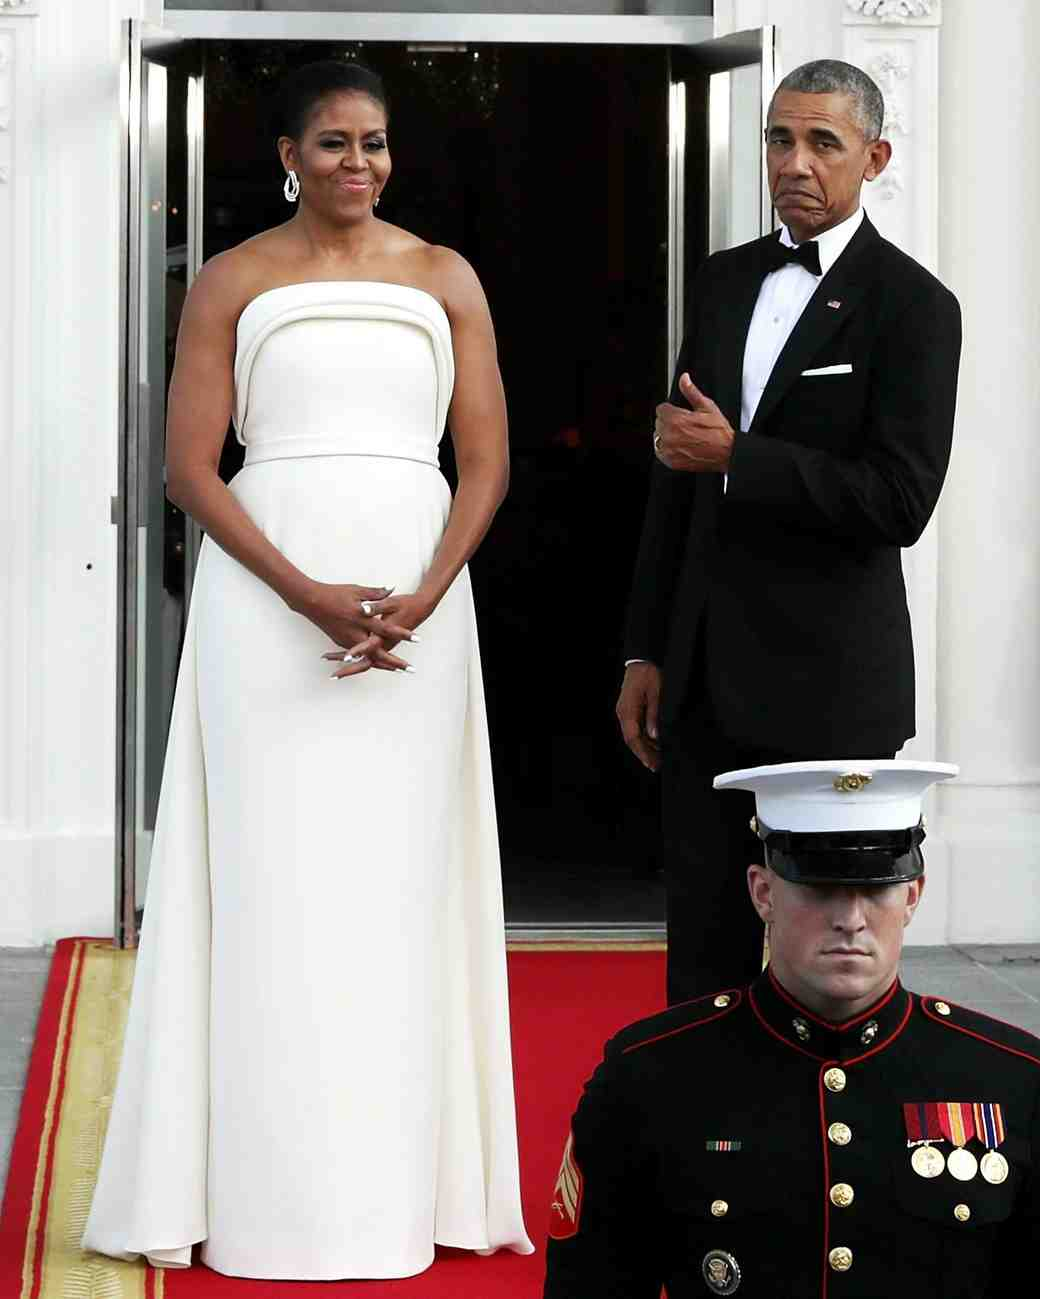 Michelle Obama in a White Brandon Maxwell Gown